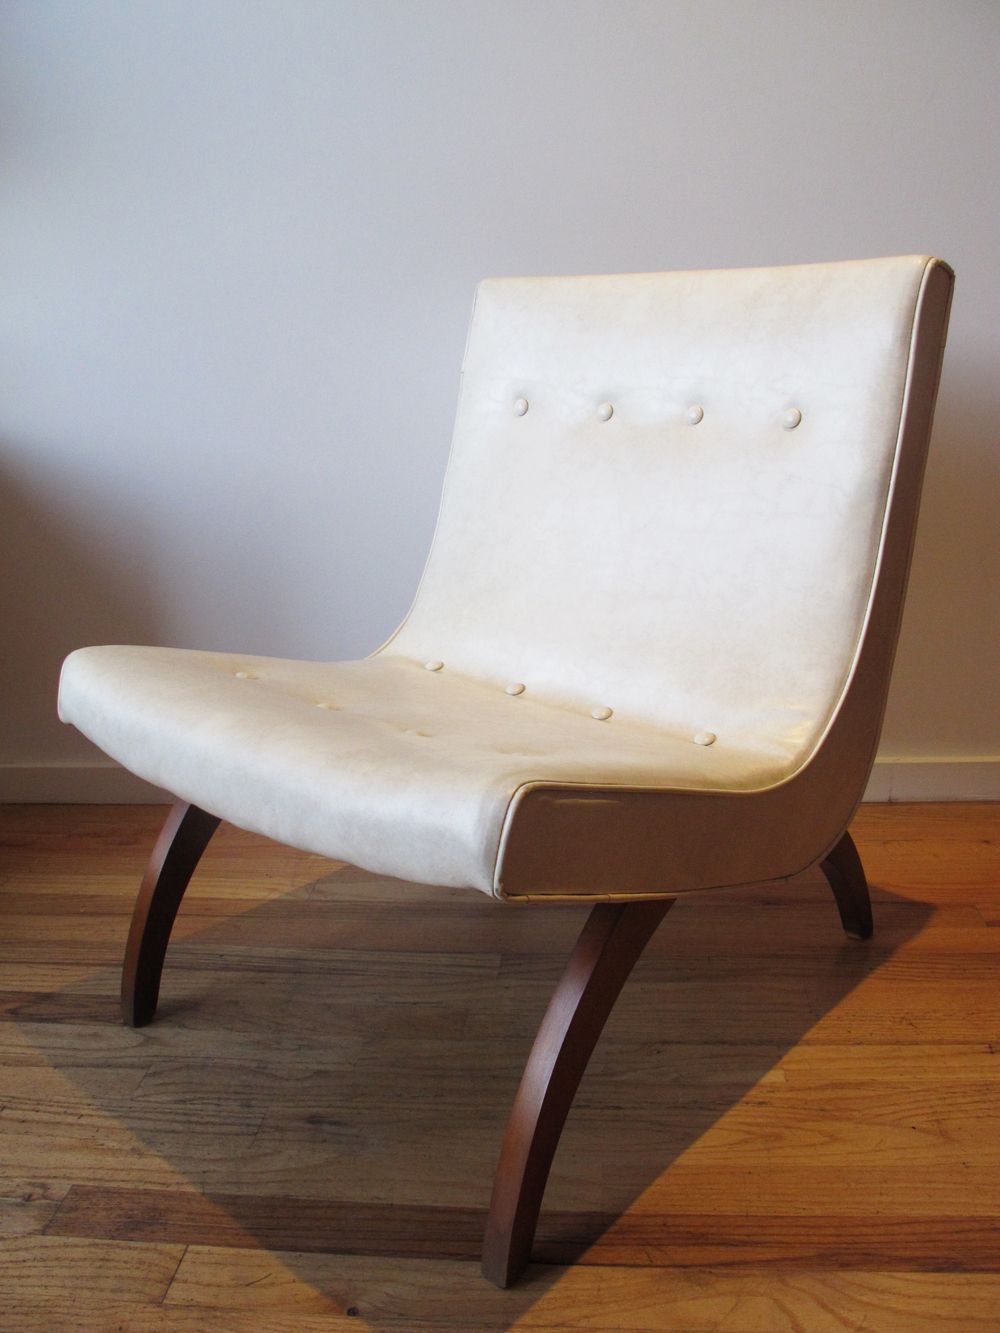 MID CENTURY SCOOP CHAIR ATTRIBUTED TO MILO BAUGHMAN